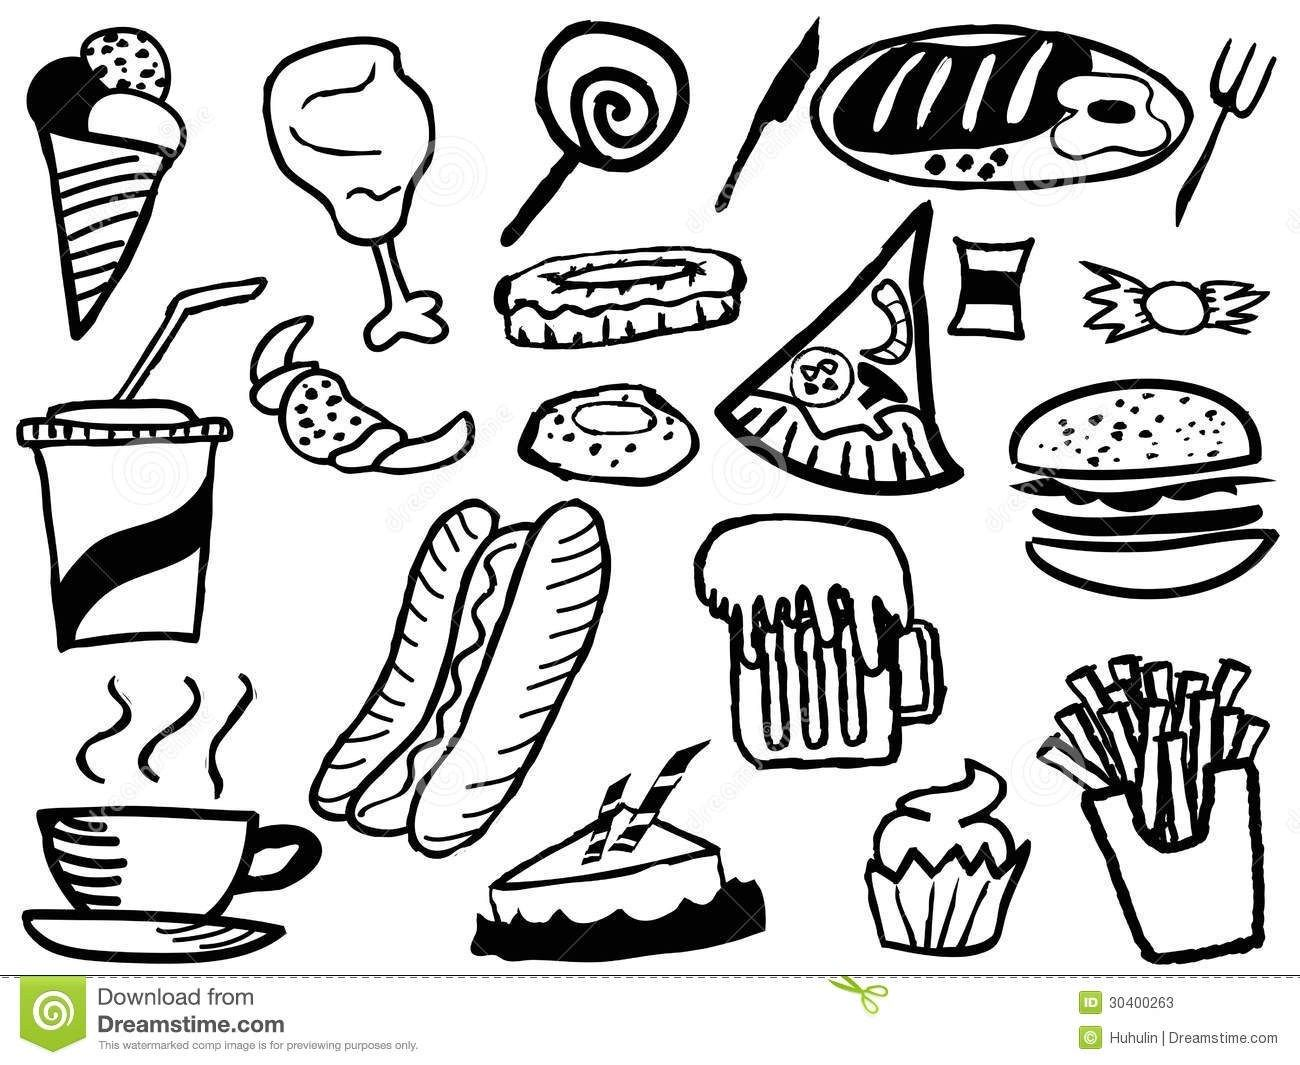 22 Awesome Image Of Food Coloring Pages Davemelillo Com Food Coloring Pages Free Kids Coloring Pages Free Printable Coloring Pages